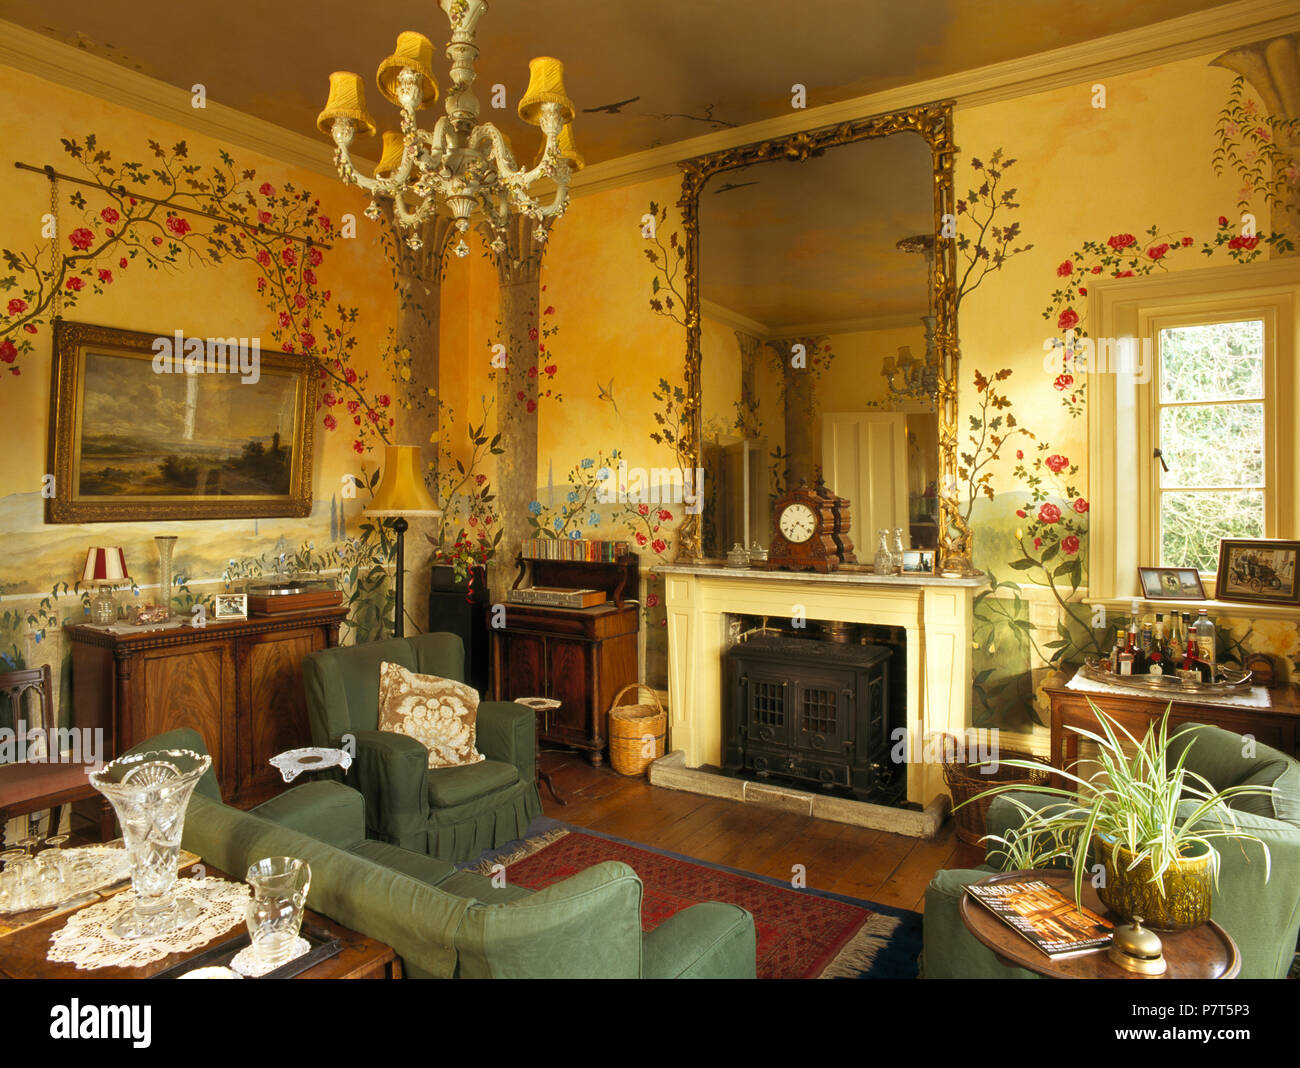 Antique Furniture In Old Fashioned Drawing Room With Decoratively Painted Walls Stock Photo Alamy